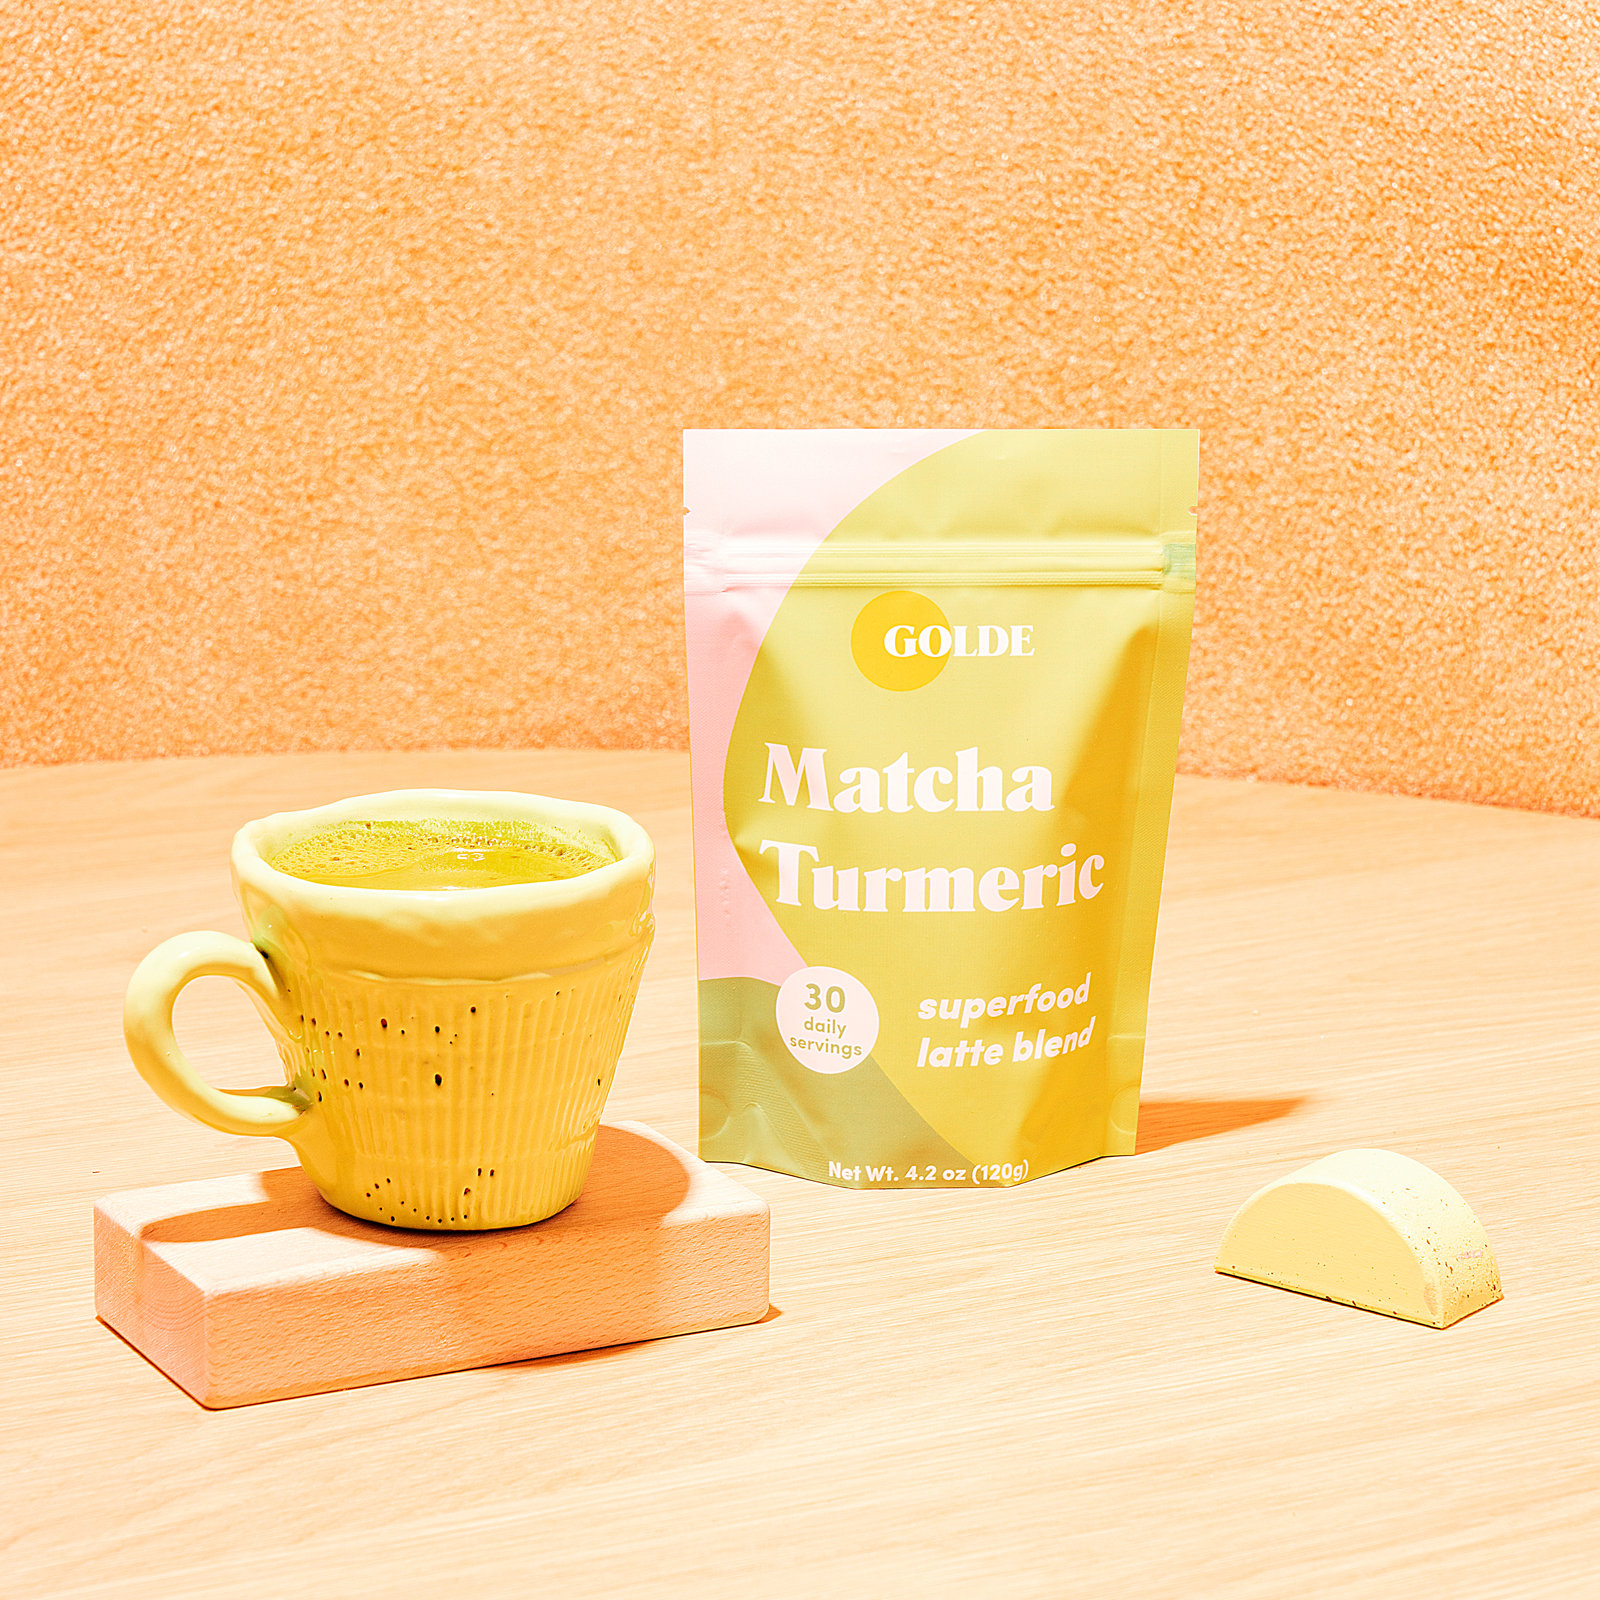 Alternate product image for Matcha Turmeric Latte Blend shown with the description.